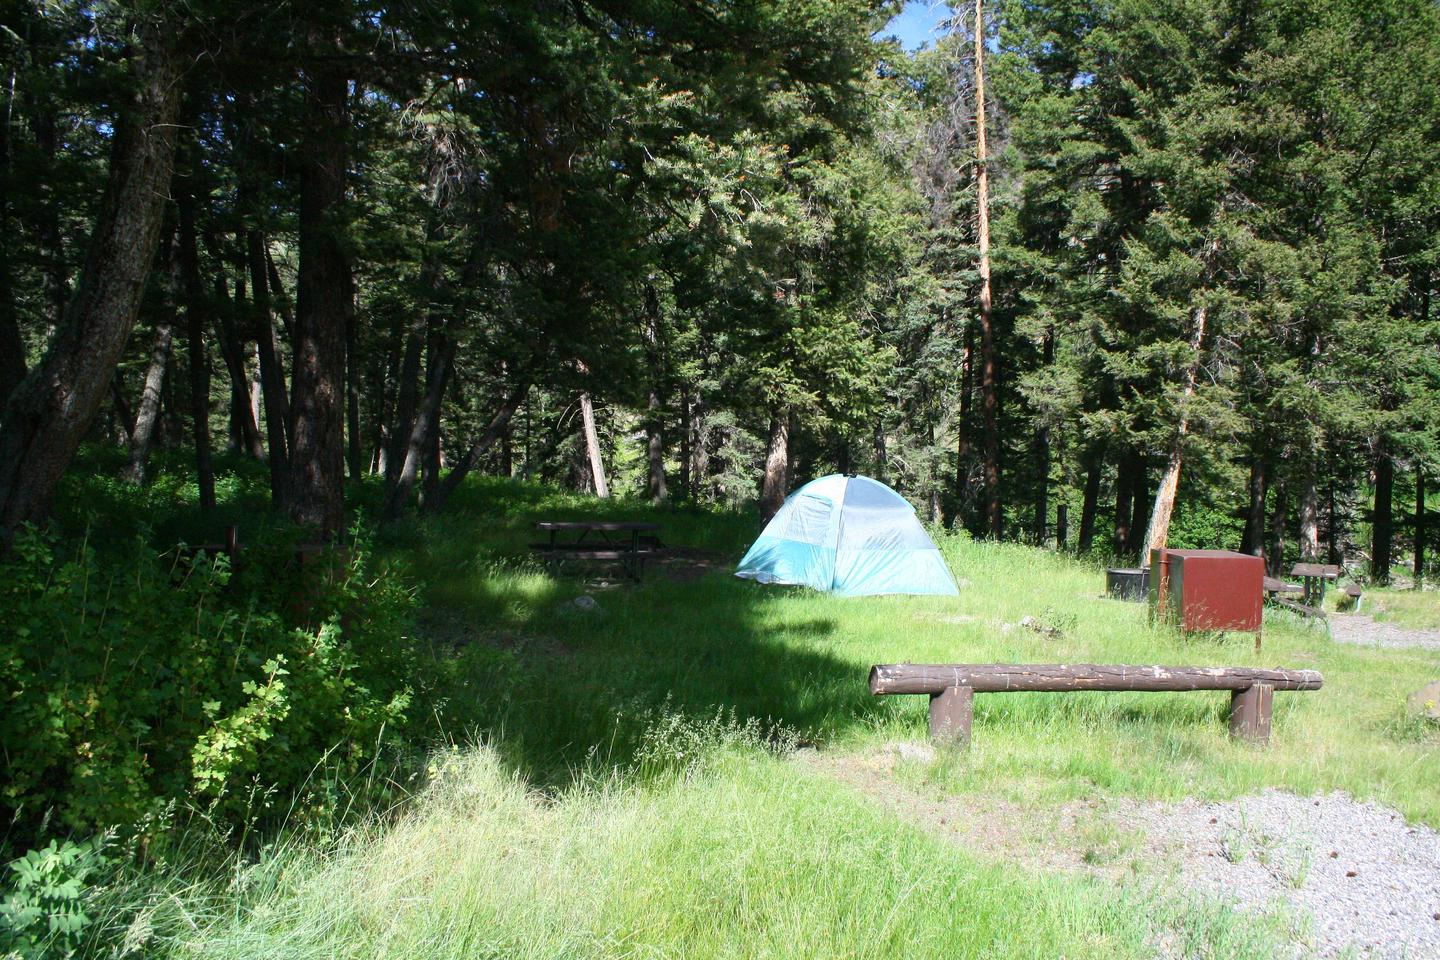 Slough Creek Campground Site #13...Slough Creek Campground Site #13